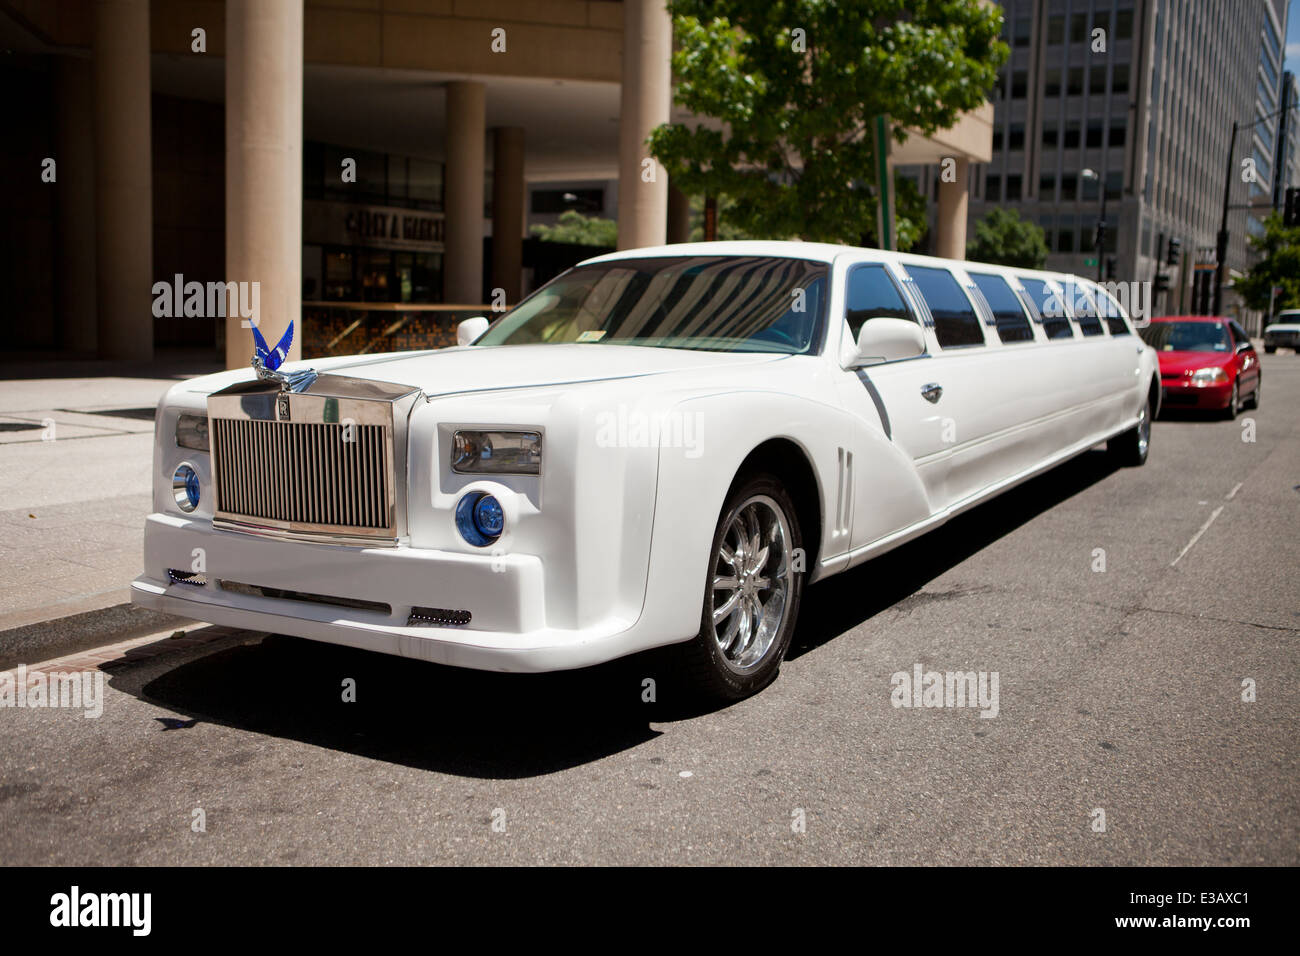 Rolls Royce Stretch Limousine Usa Stock Photo 70925681